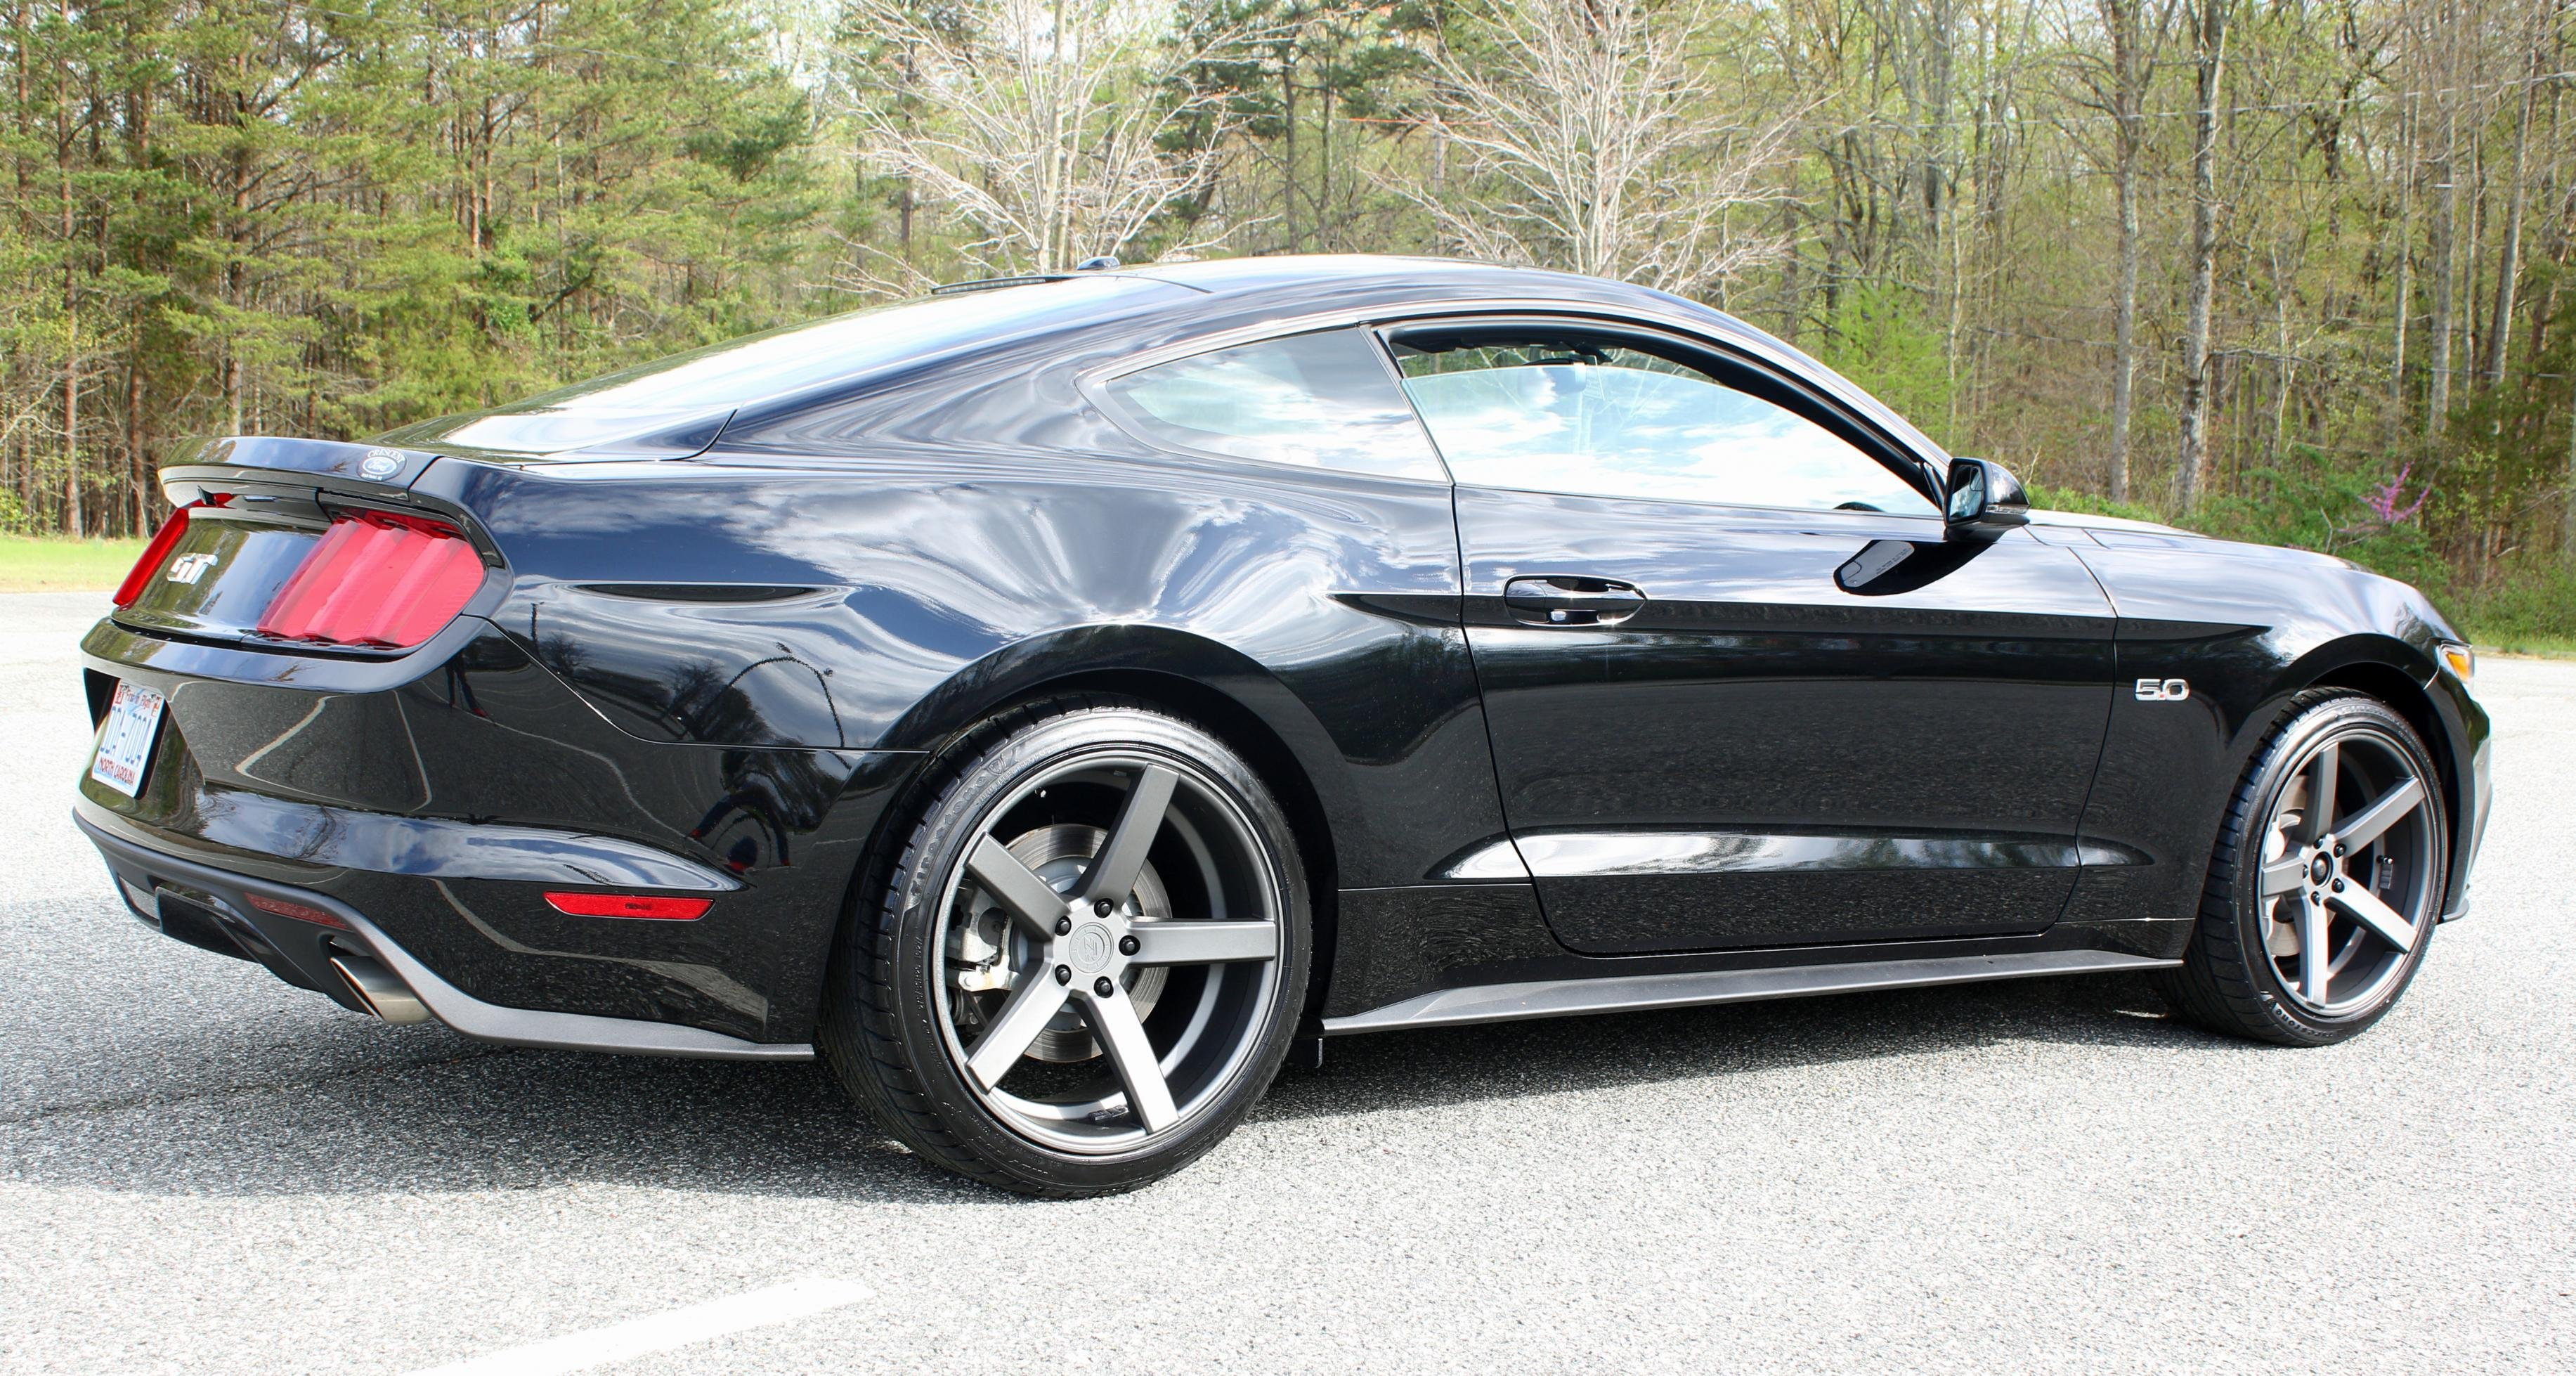 How To Rotate Tires >> Running Square setup on Staggered wheels - Ford Mustang Forum